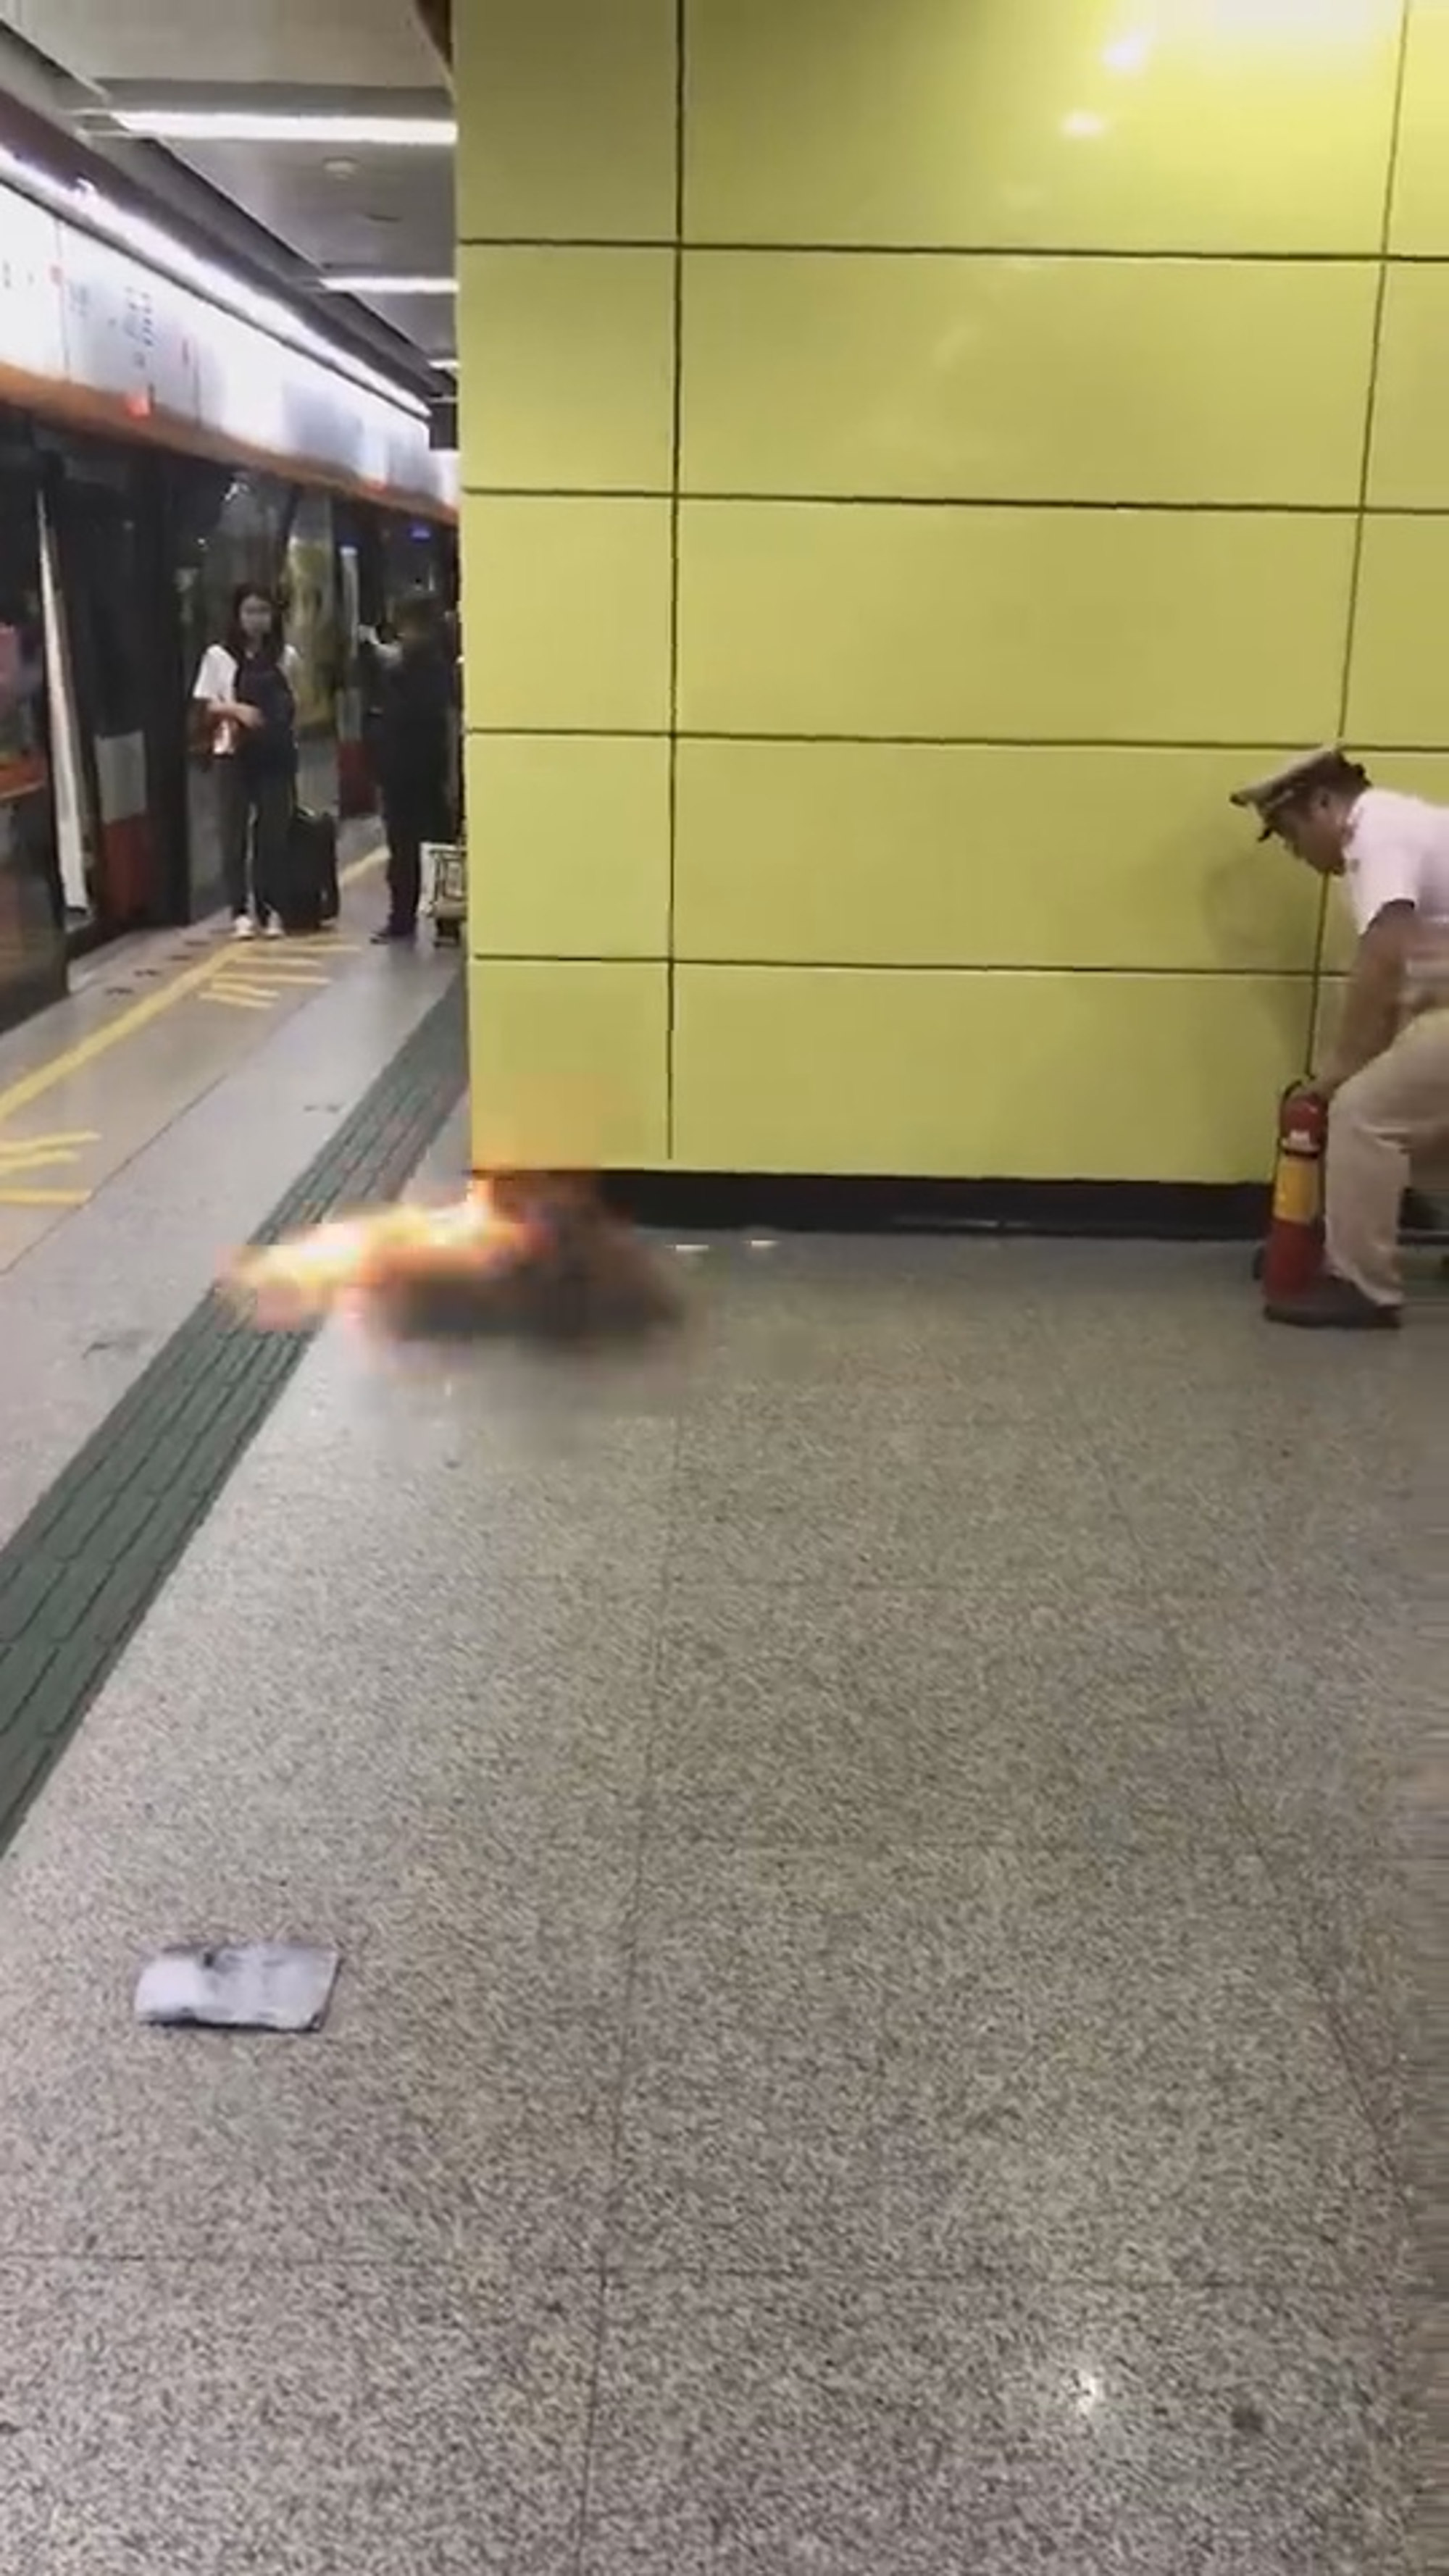 Mobile Phone Power Bank Explodes On Train Platform - ViralTab